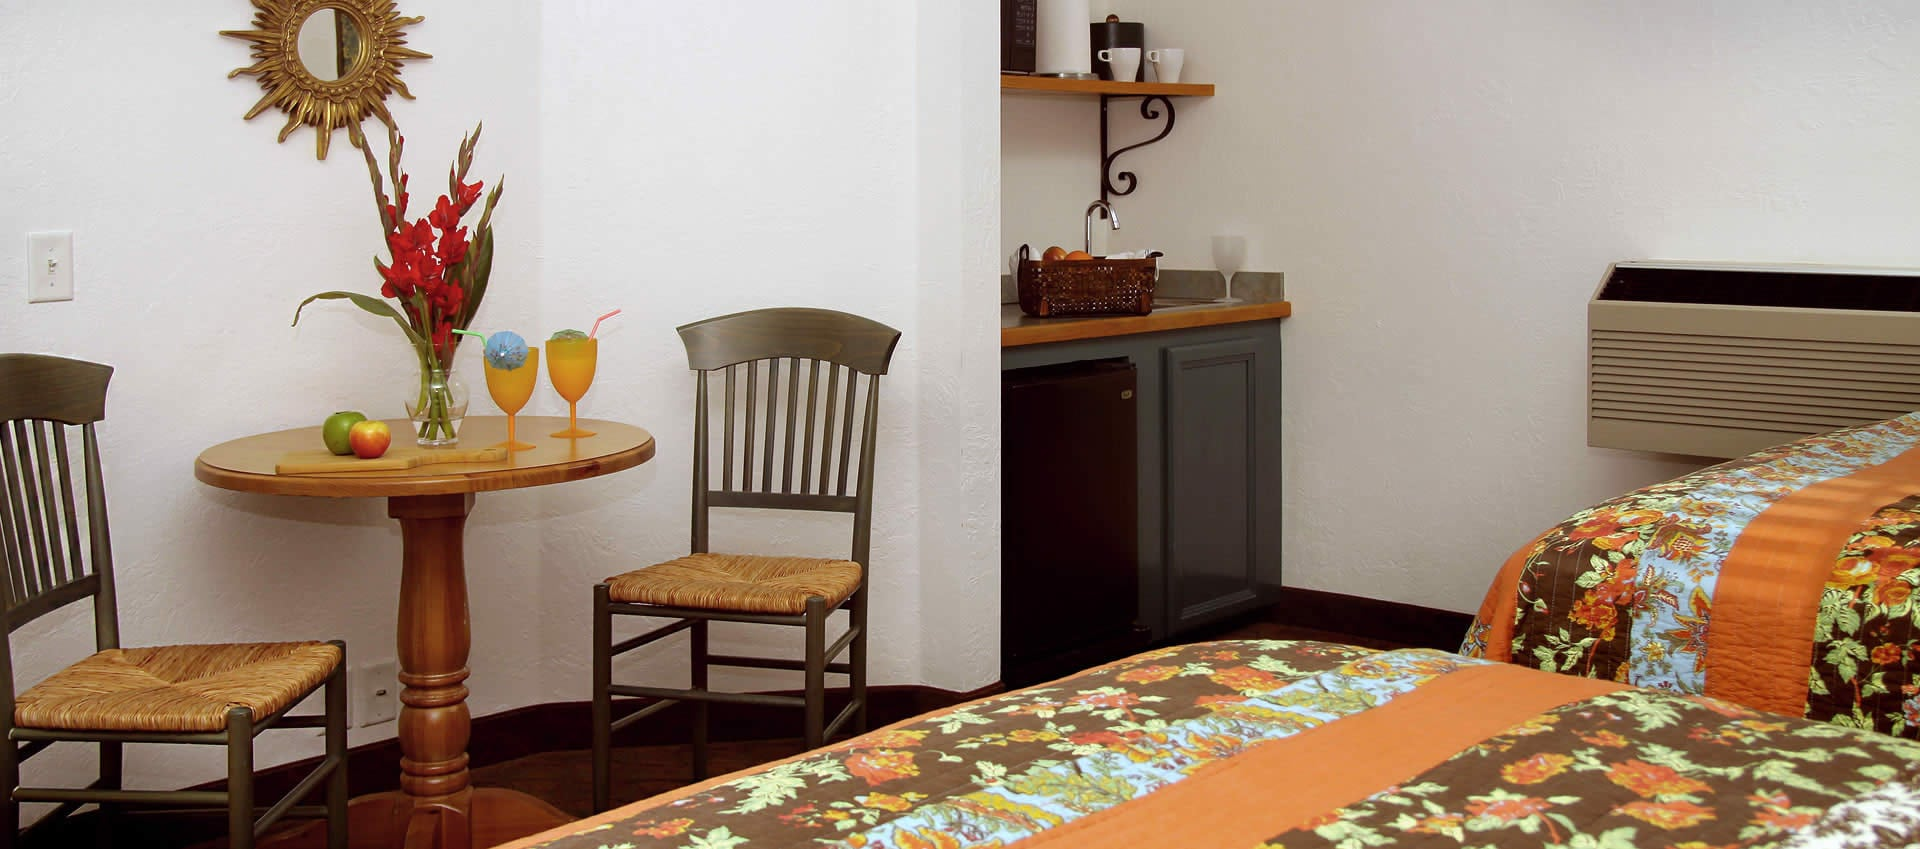 Double Queen Room table and serve counter